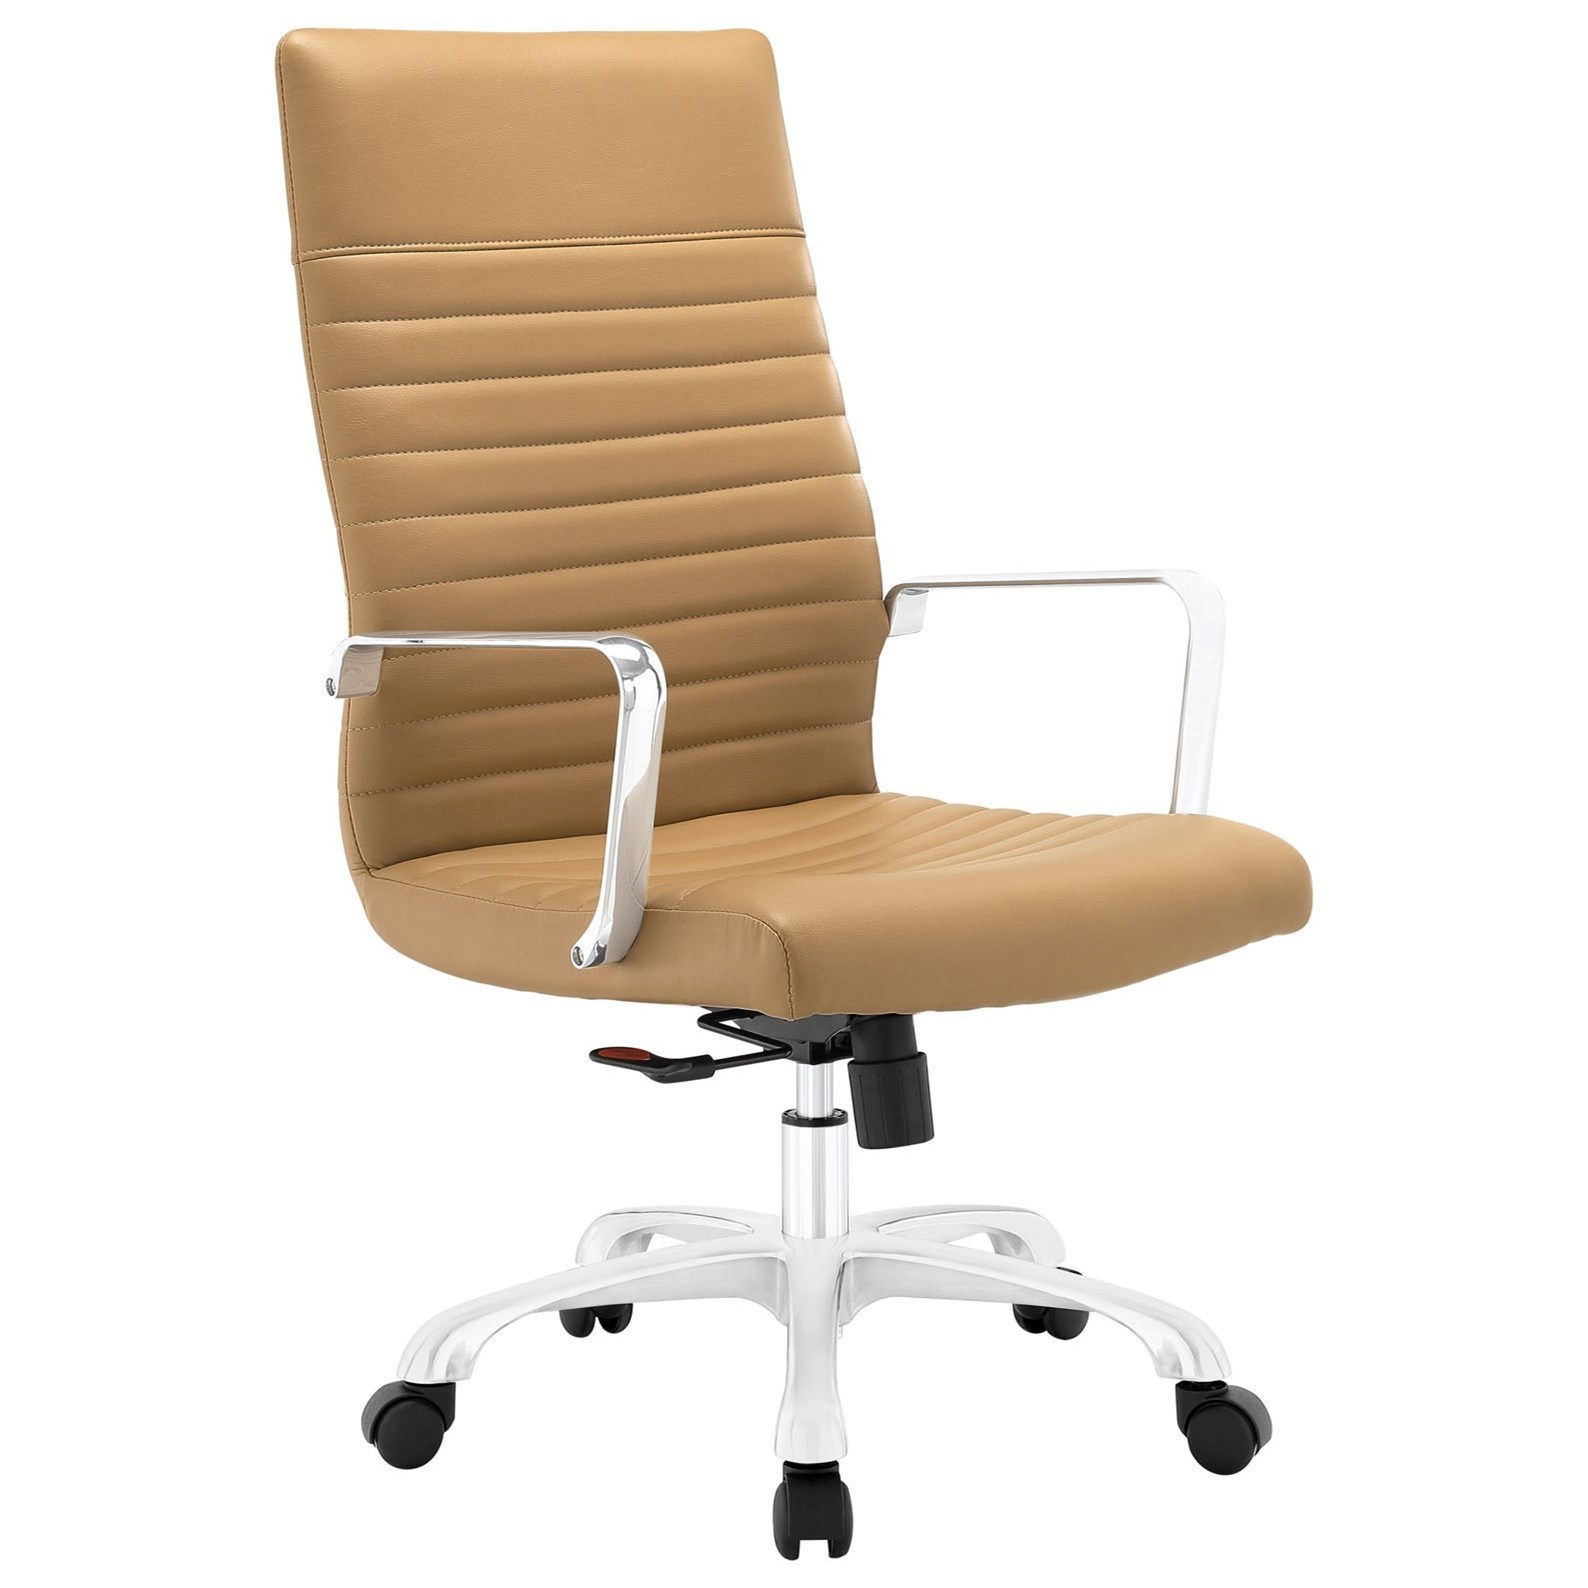 Finesse Highback Office Chair by Modway at Value City Furniture